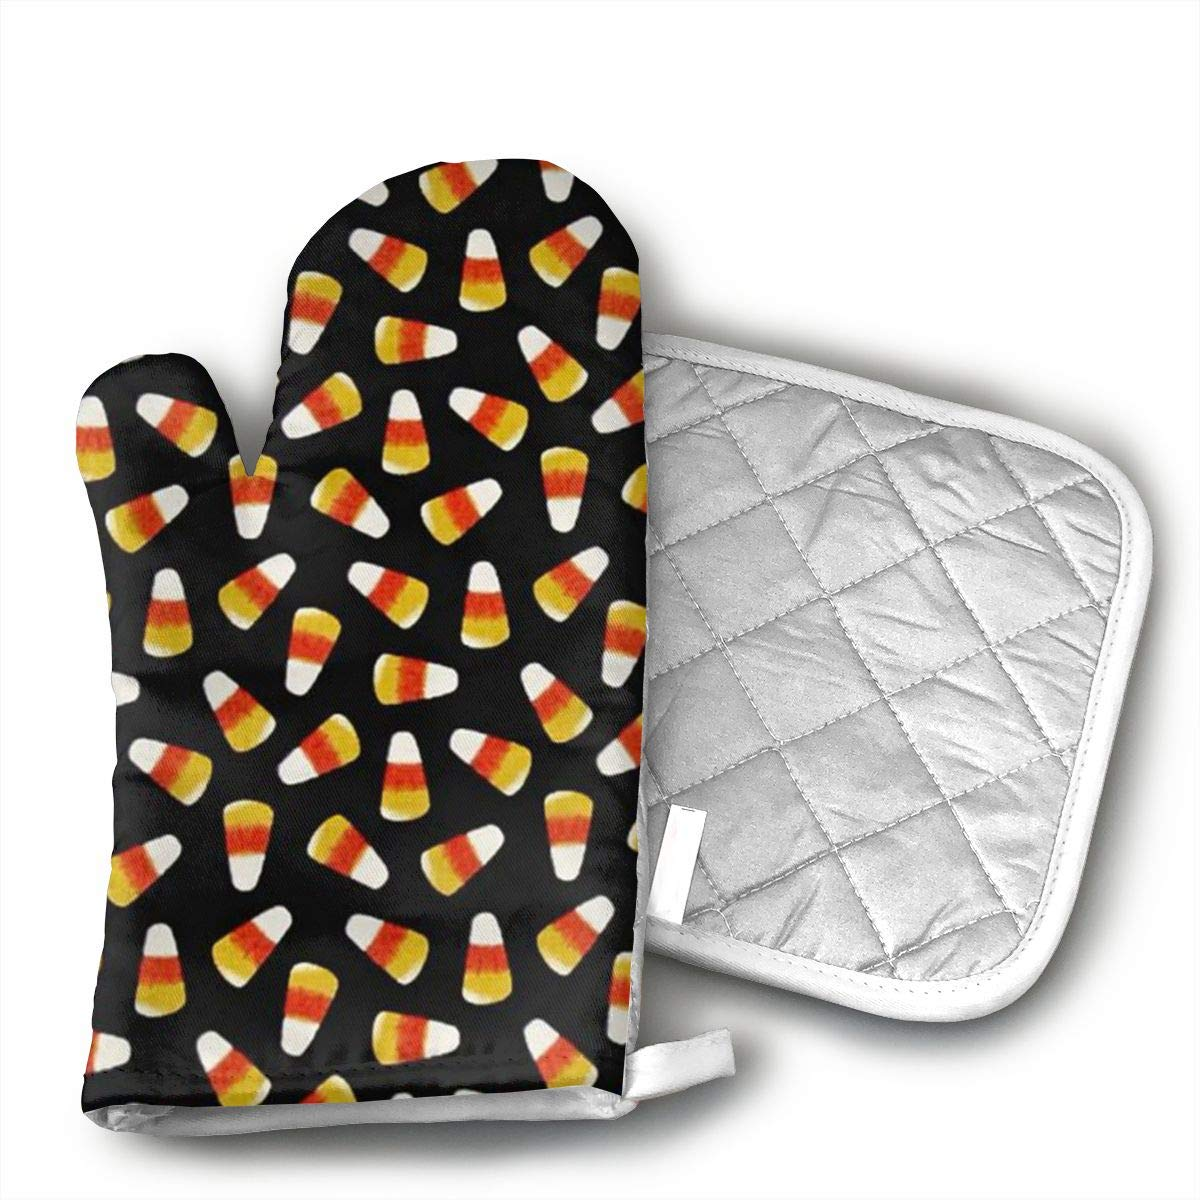 Sjiwqoj8 Halloween Candy Corn Kitchen Oven Mitts,Oven Mitts and Pot Holders,Heat Resistant with Quilted Cotton Lining,Cooking,Baking,Grilling,Barbecue